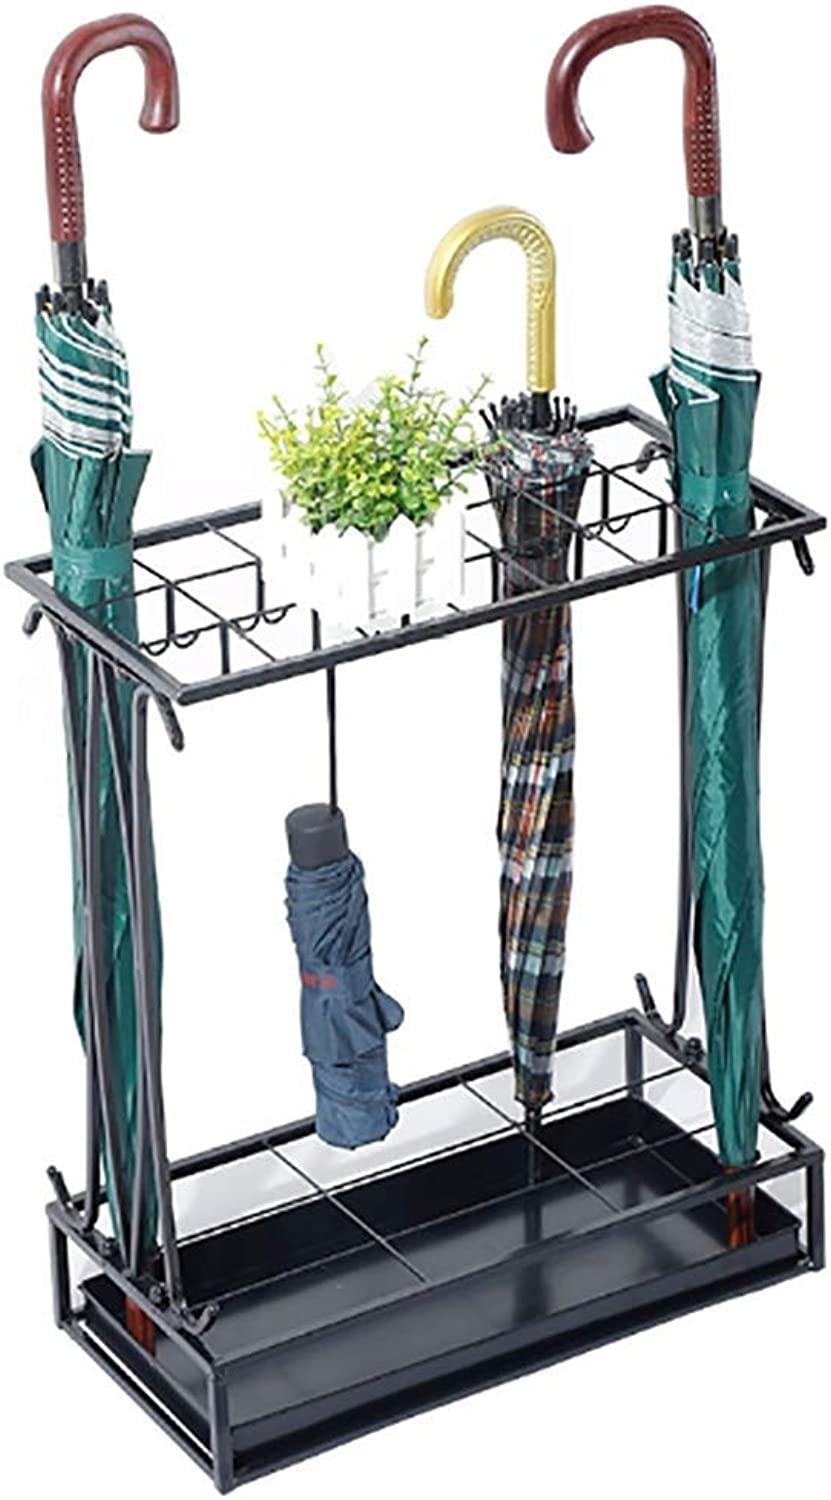 Wrought Iron Umbrella Stand Wrought Iron Floor-Mounted Household Umbrella Stand Foyer Office Umbrella Storage Bucket